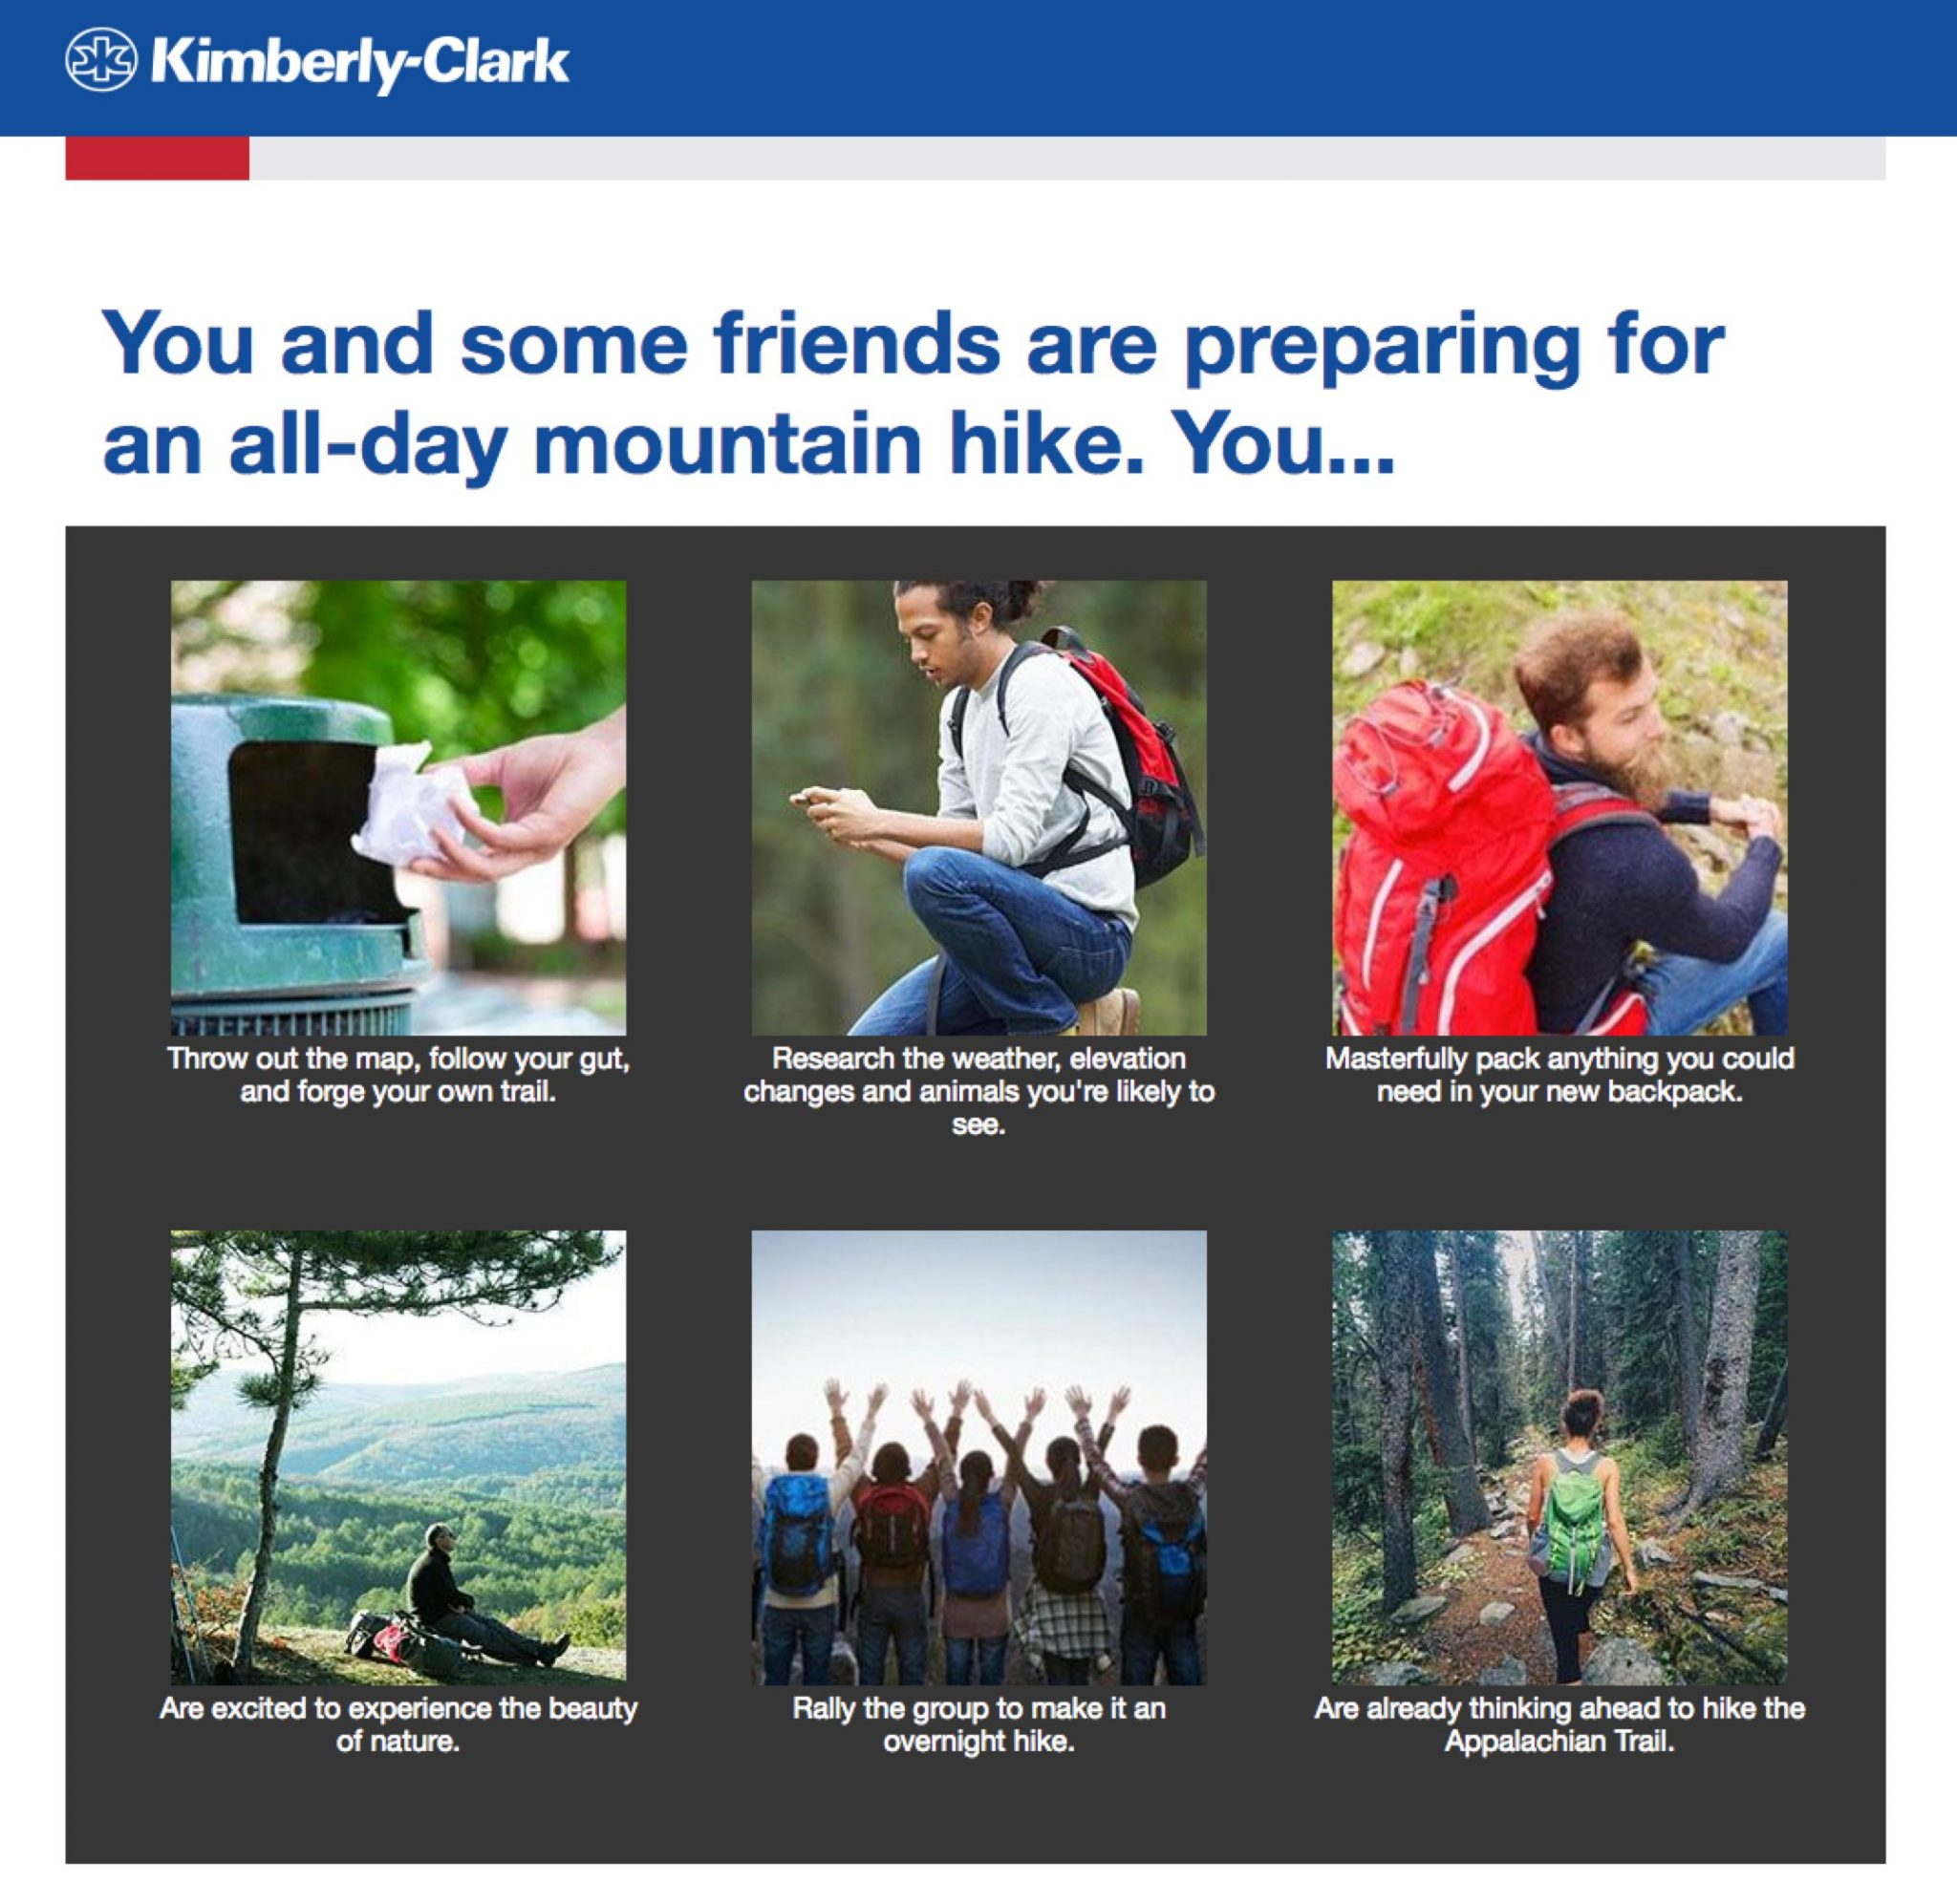 recruitment-tests-kimberly-clark-2-ongig-blog